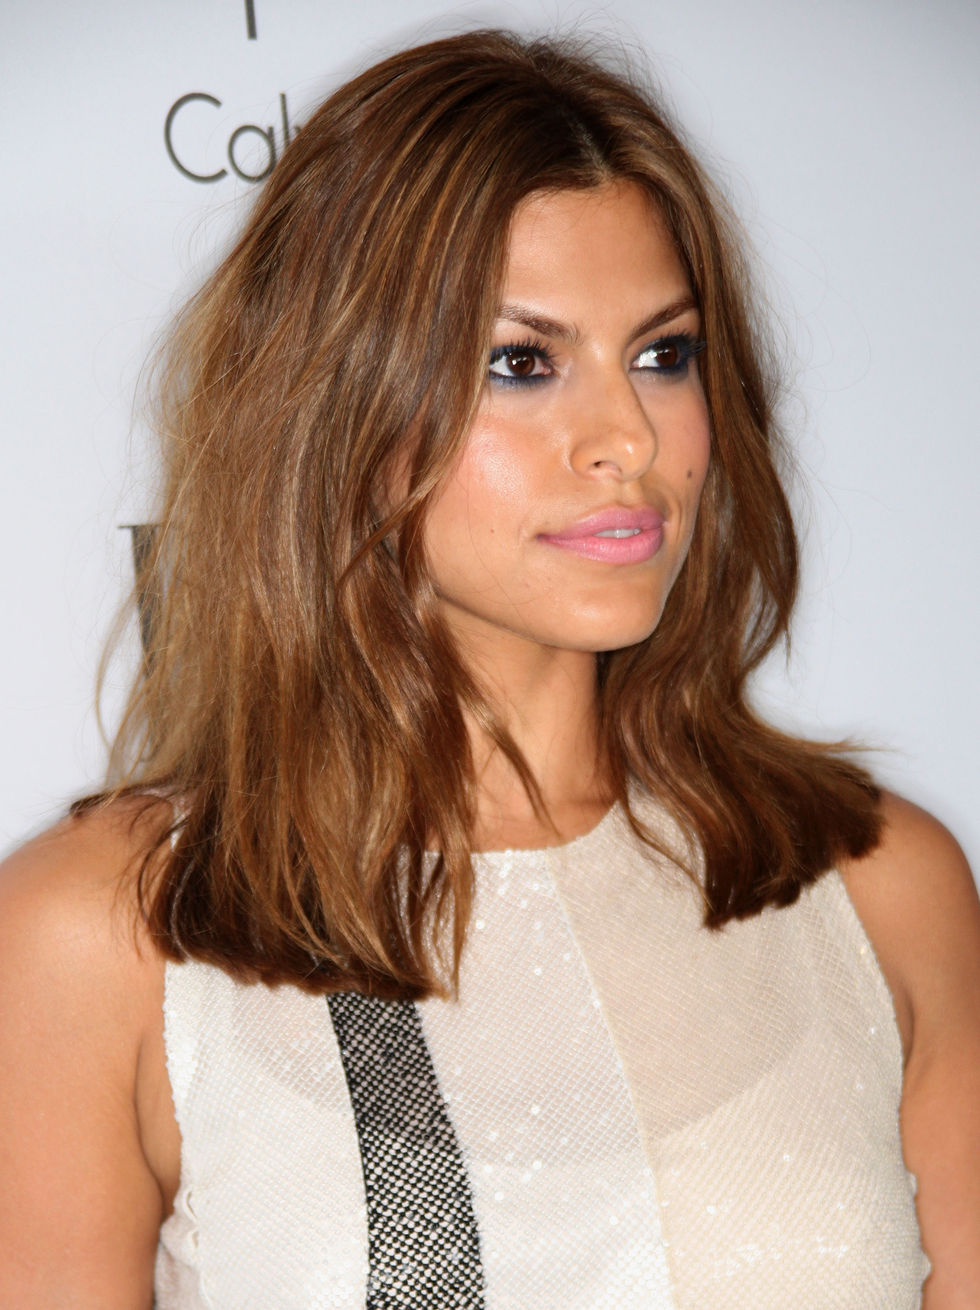 eva-mendes-15th-annual-women-in-hollywood-tribute-in-beverly-hills-01